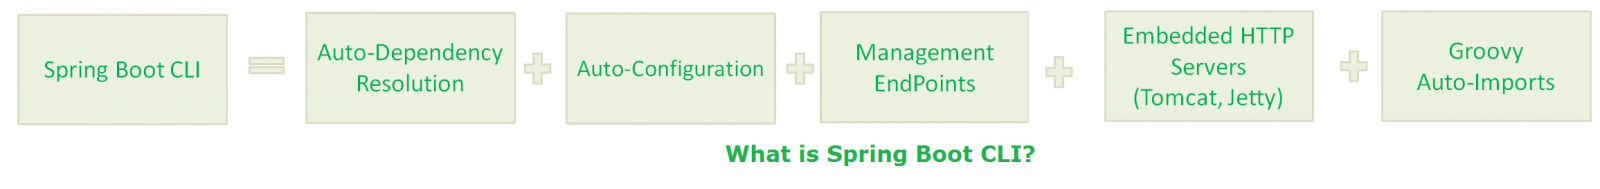 spring boot cli